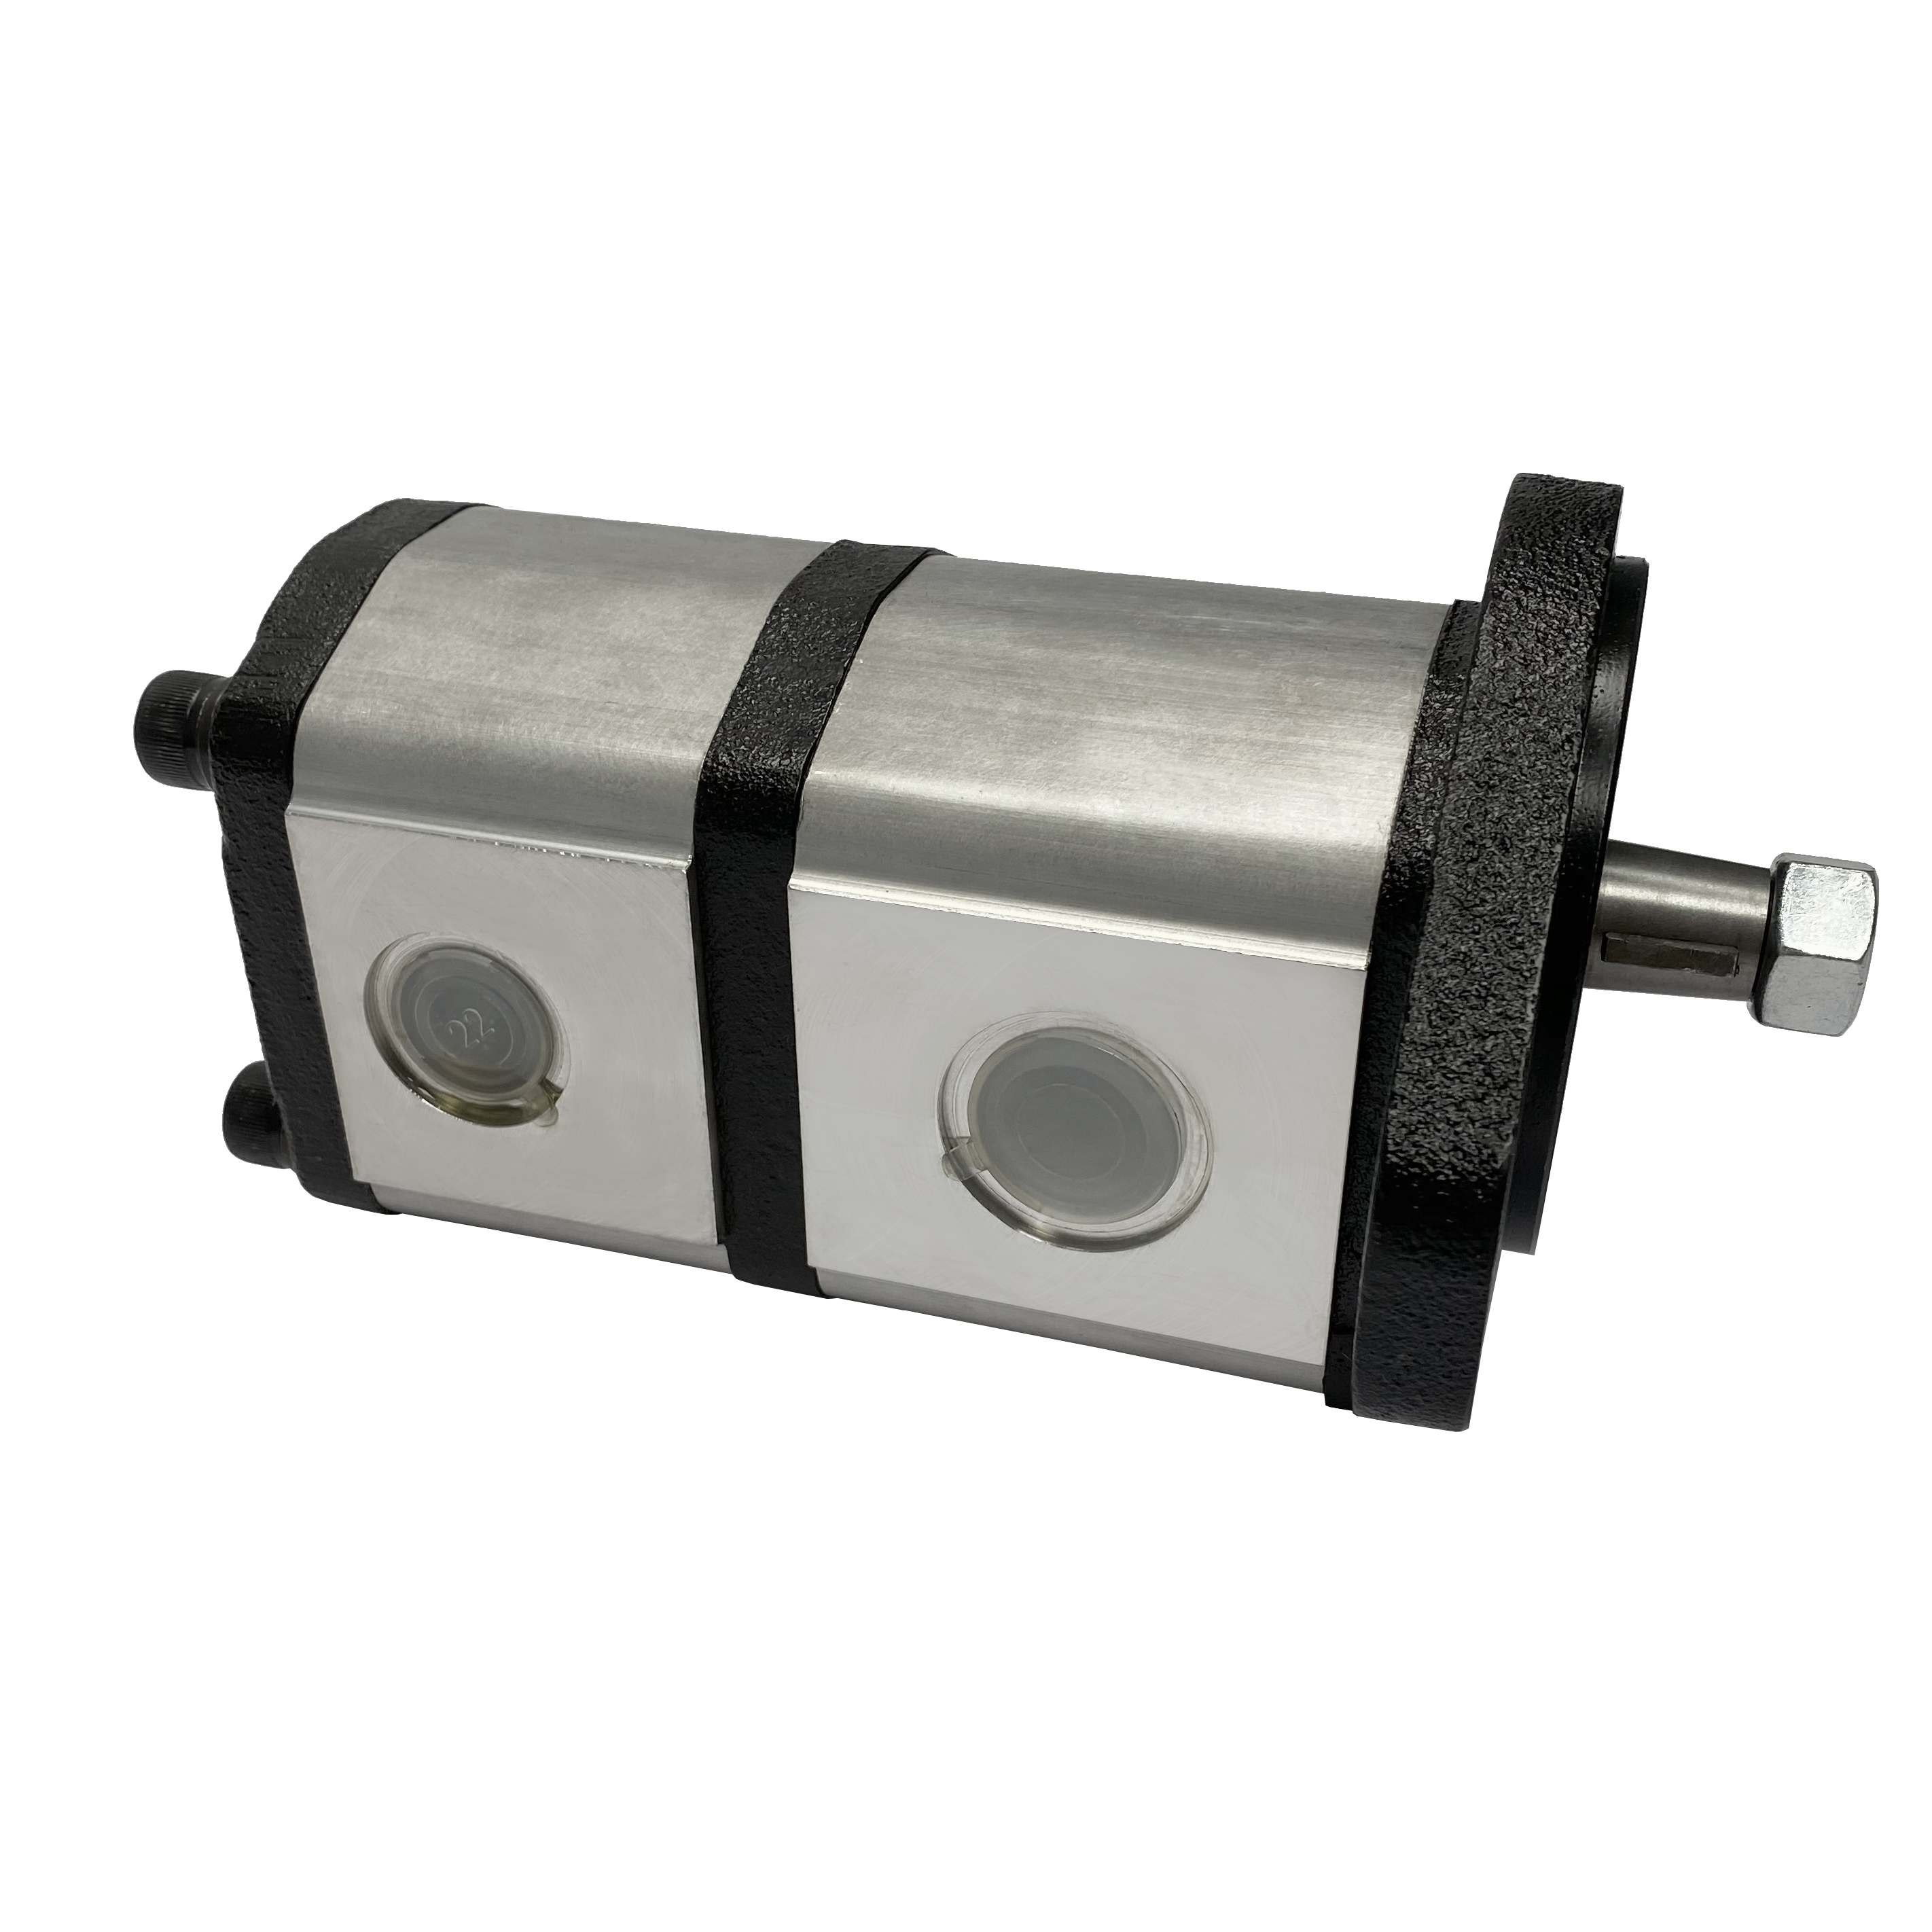 Hydraulic gear pump replacement for John Deere RE73947   Magister Hydraulics